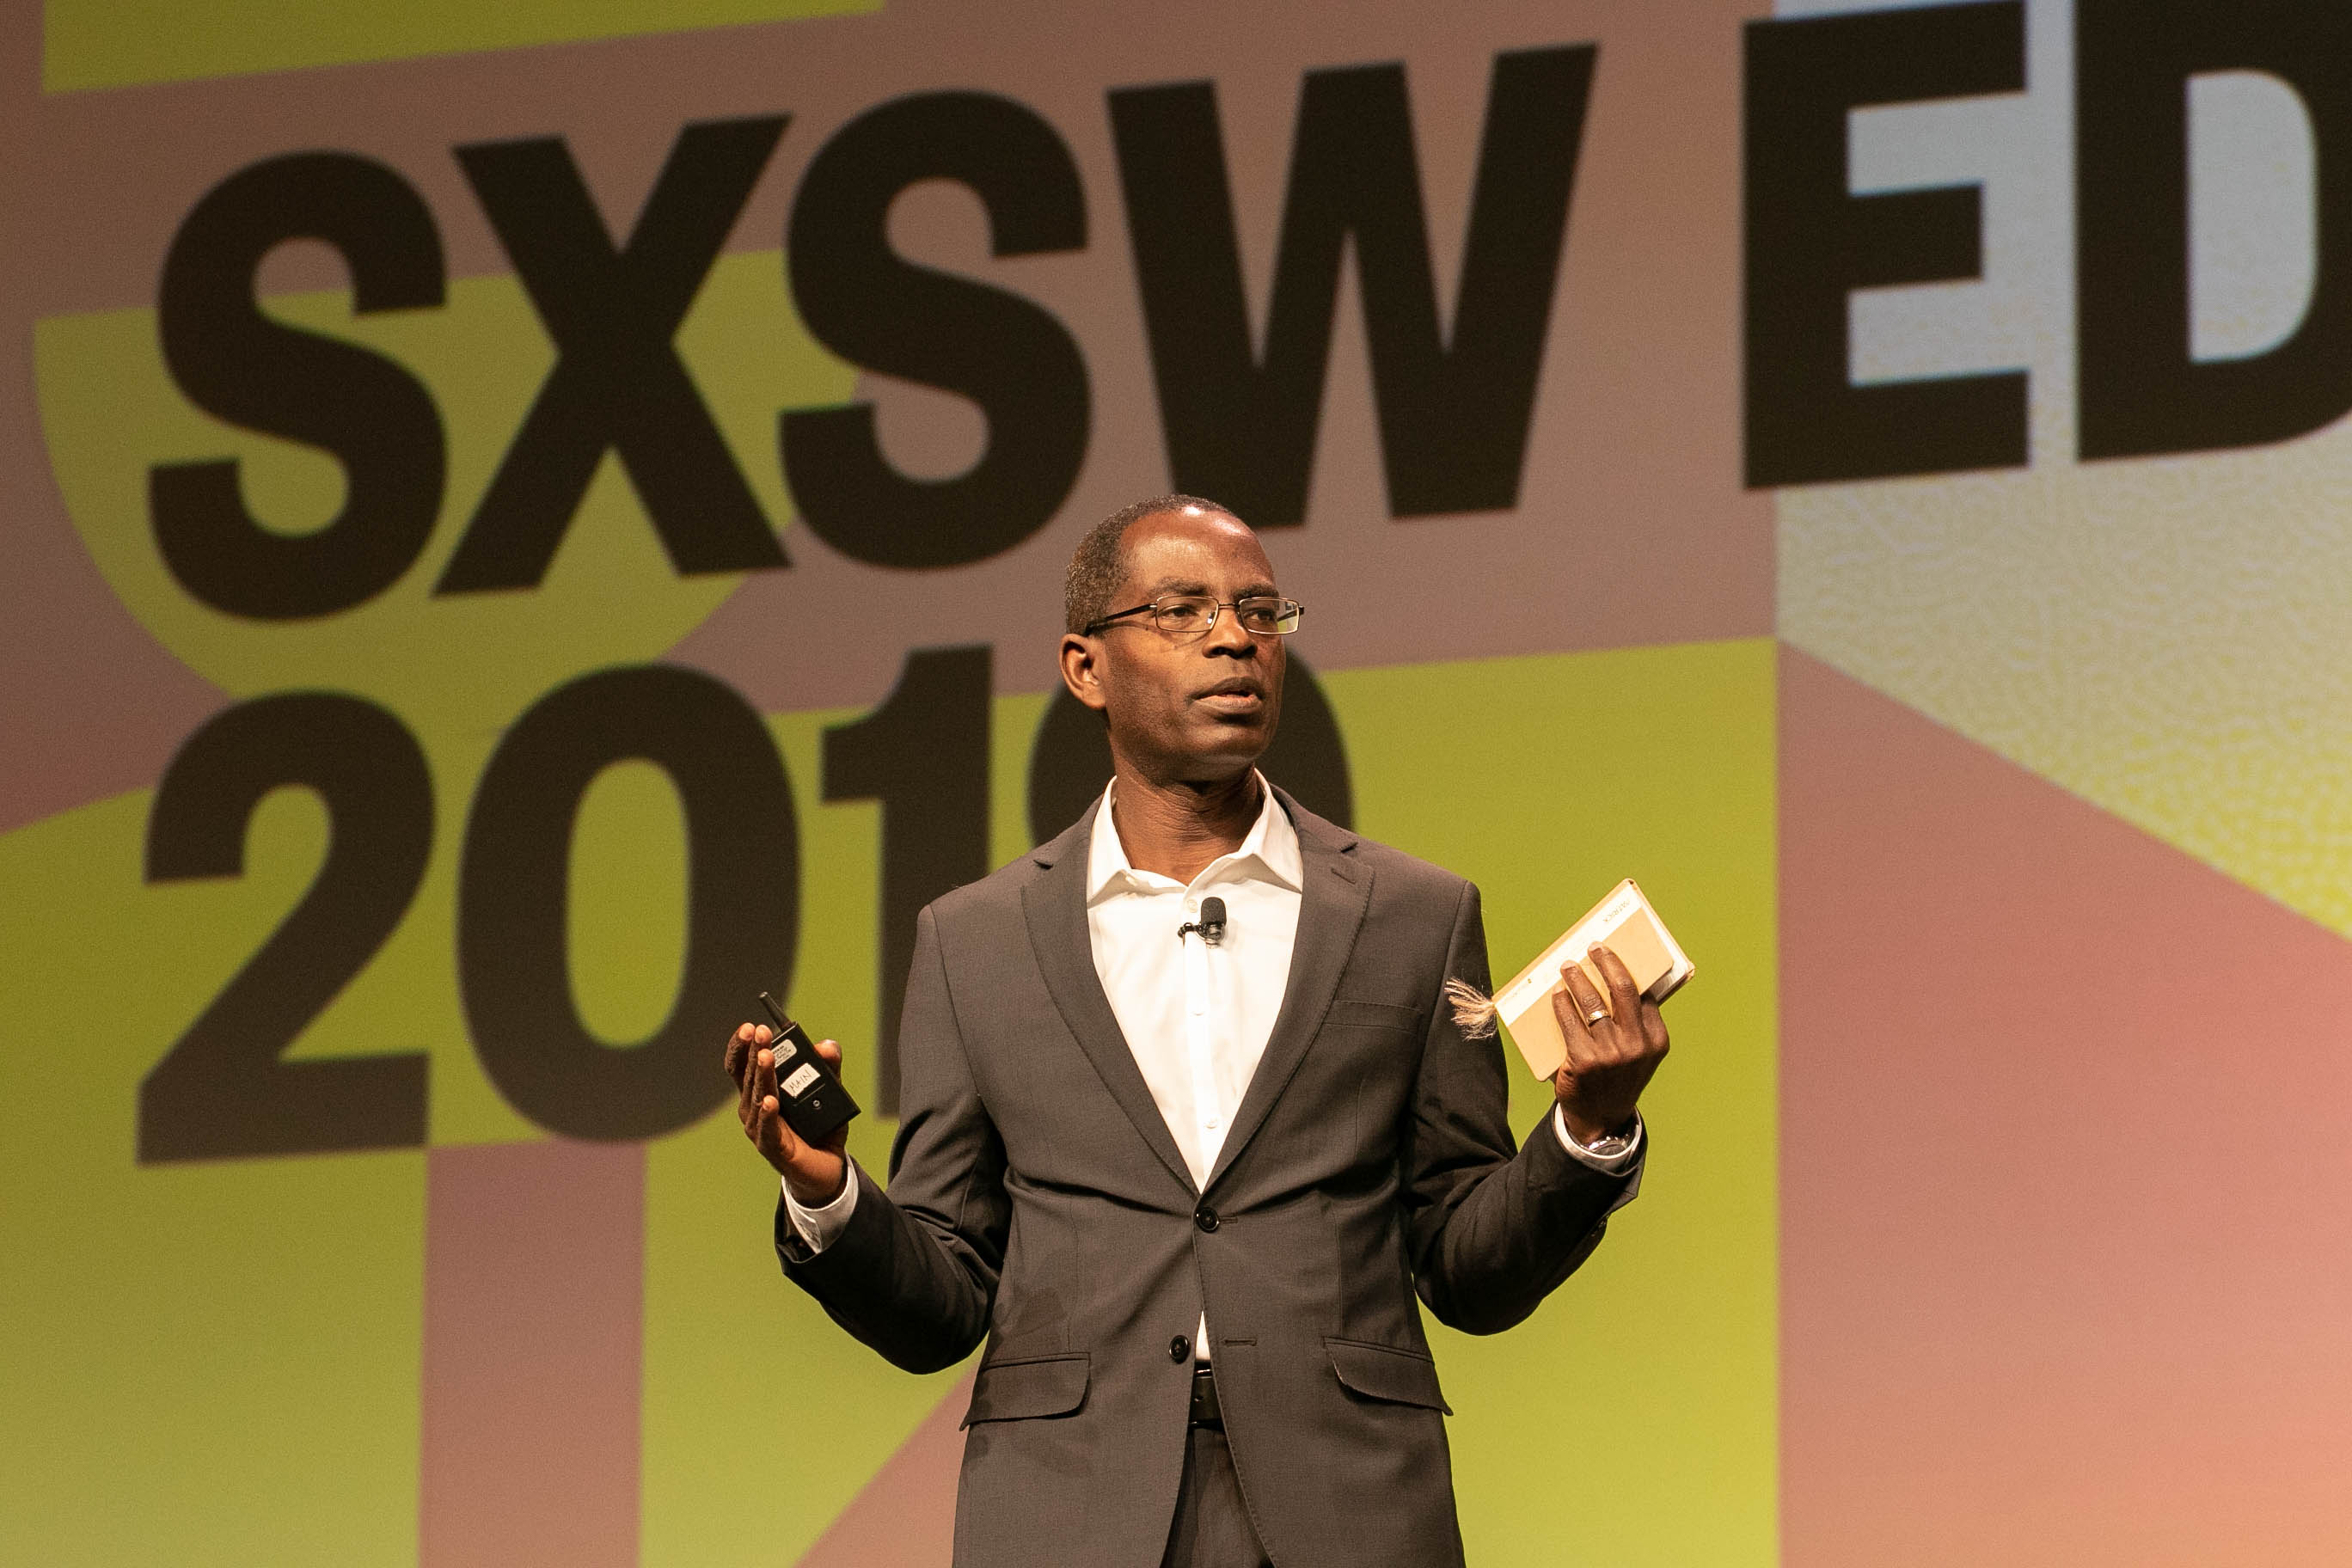 Patrick Awuah Jr Keynote at SXSW EDU 2019. Photo by Steven Snow.